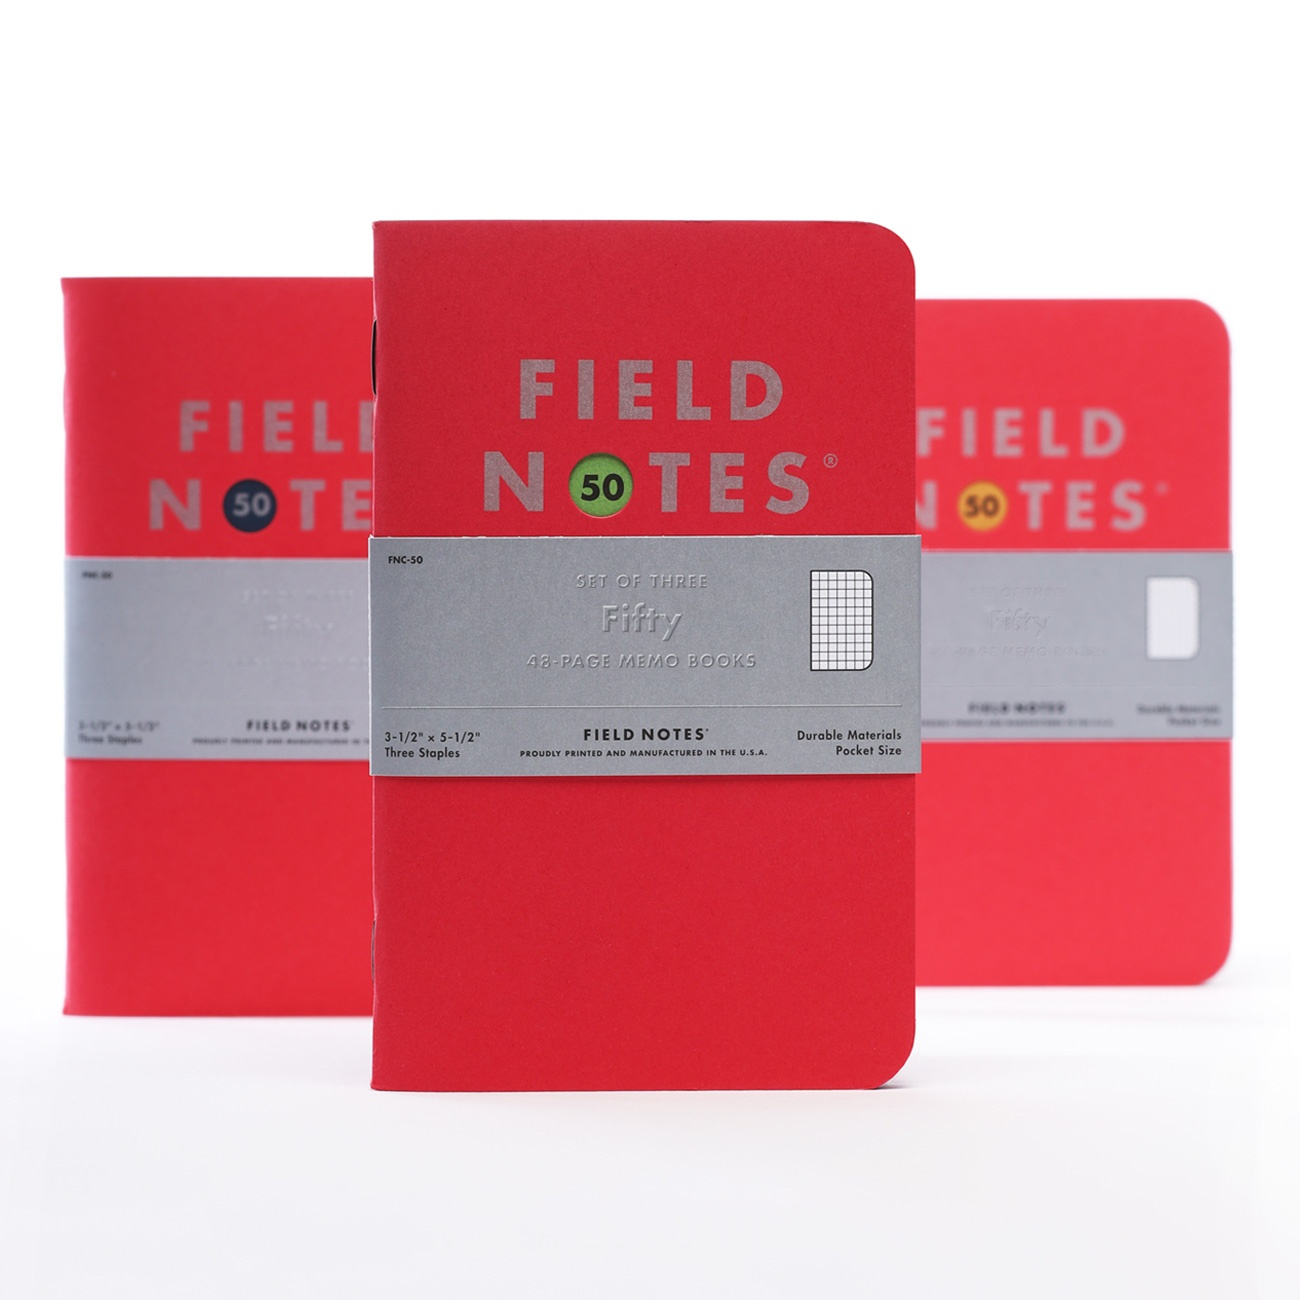 Field Notes, Fifty, 3 Notizhefte, rotes Cover, silber bedruckt,